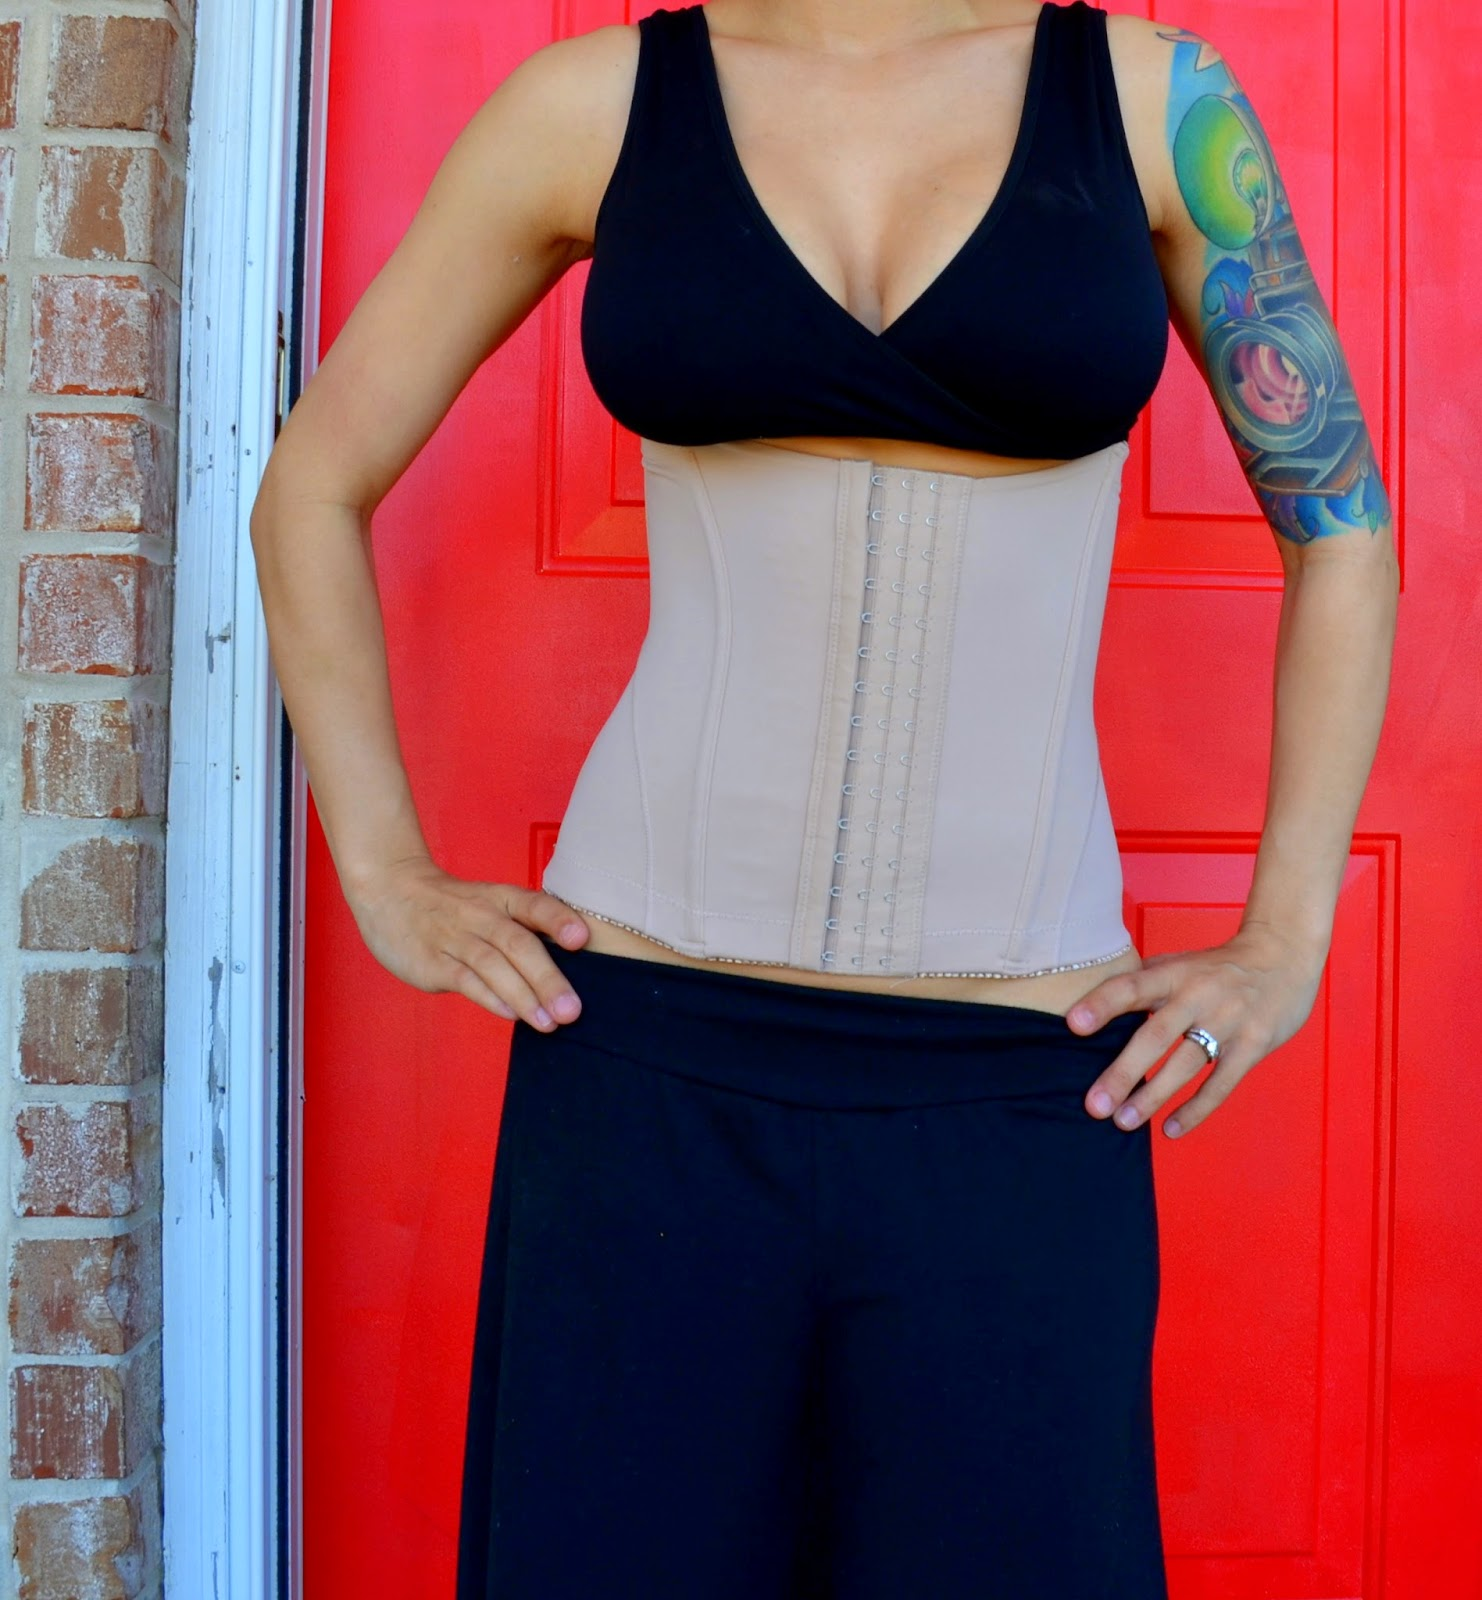 96d4ae5cff Diary of a Fit Mommy  Belly Bandit Mother Tucker Corset Review and ...